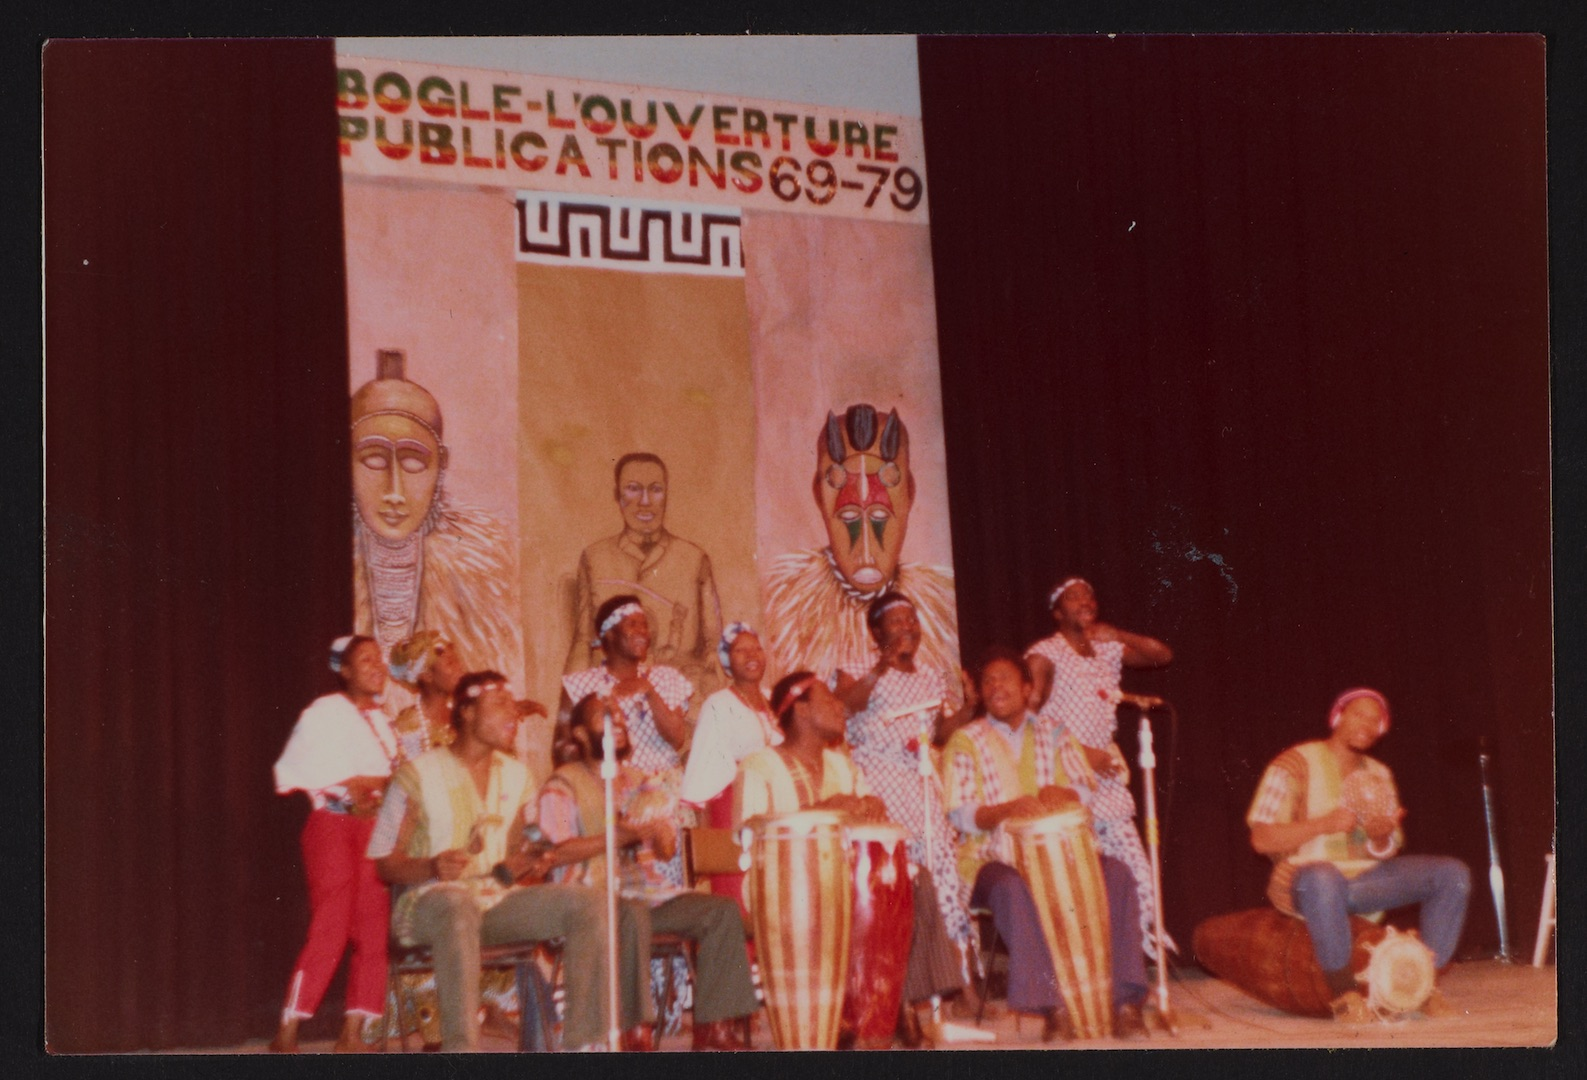 06 Bogle-L'Ouverture Publications 10th Anniversary event. 1979. Huntley Archives at London Metropoli